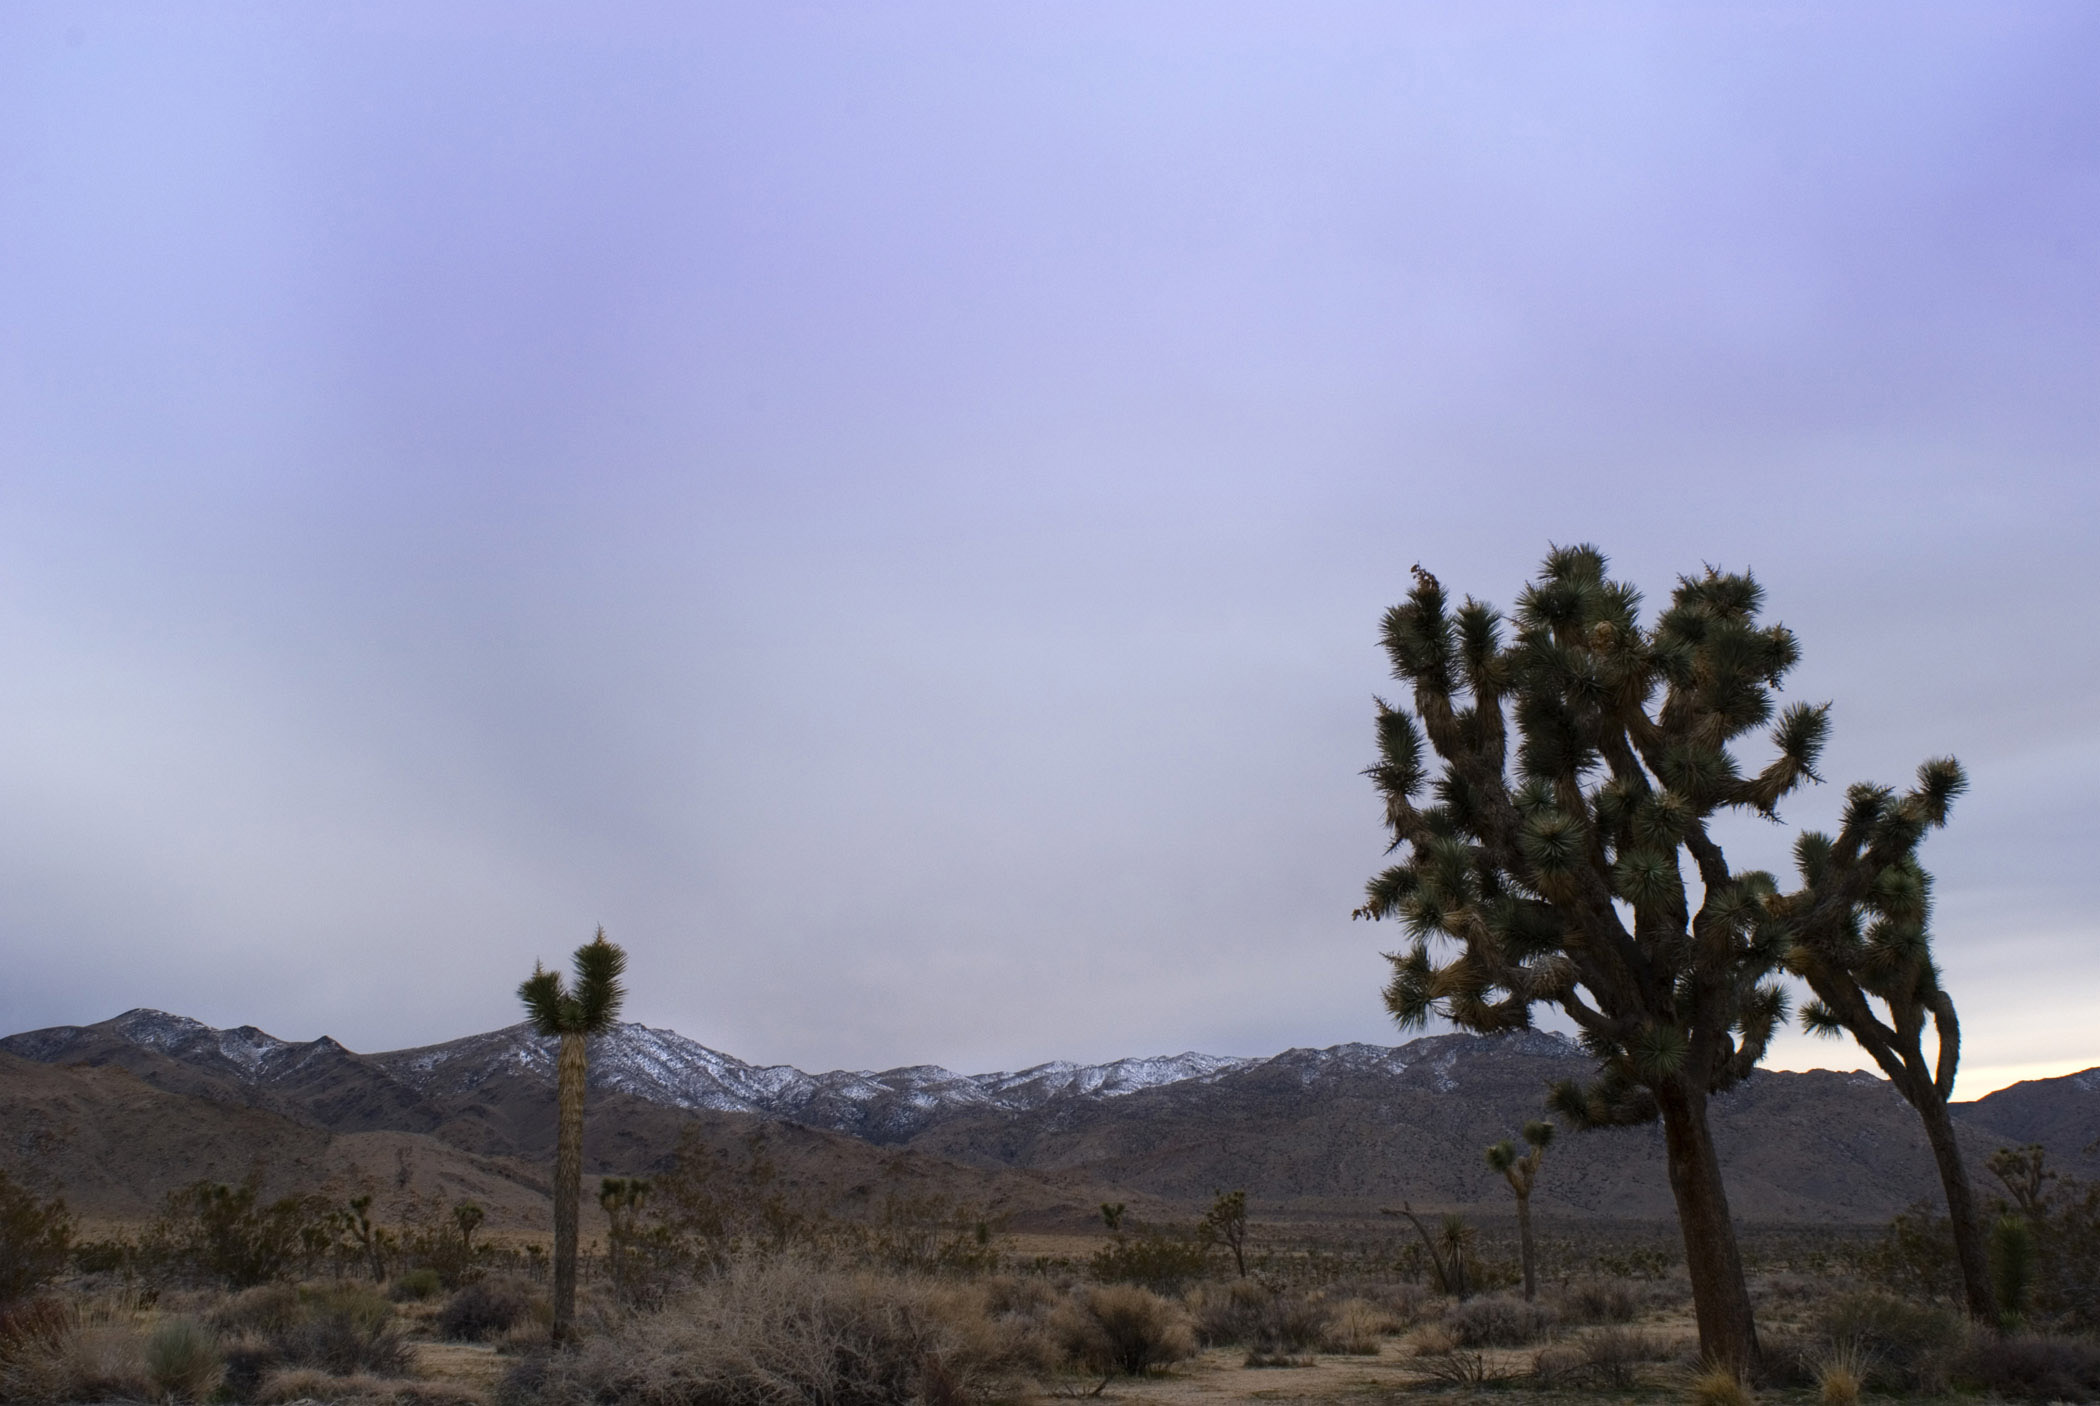 Trees and Grasses at Joshua Tree National Park in Extensive View. Isolated on Lighter Blue Violet Sky Background.